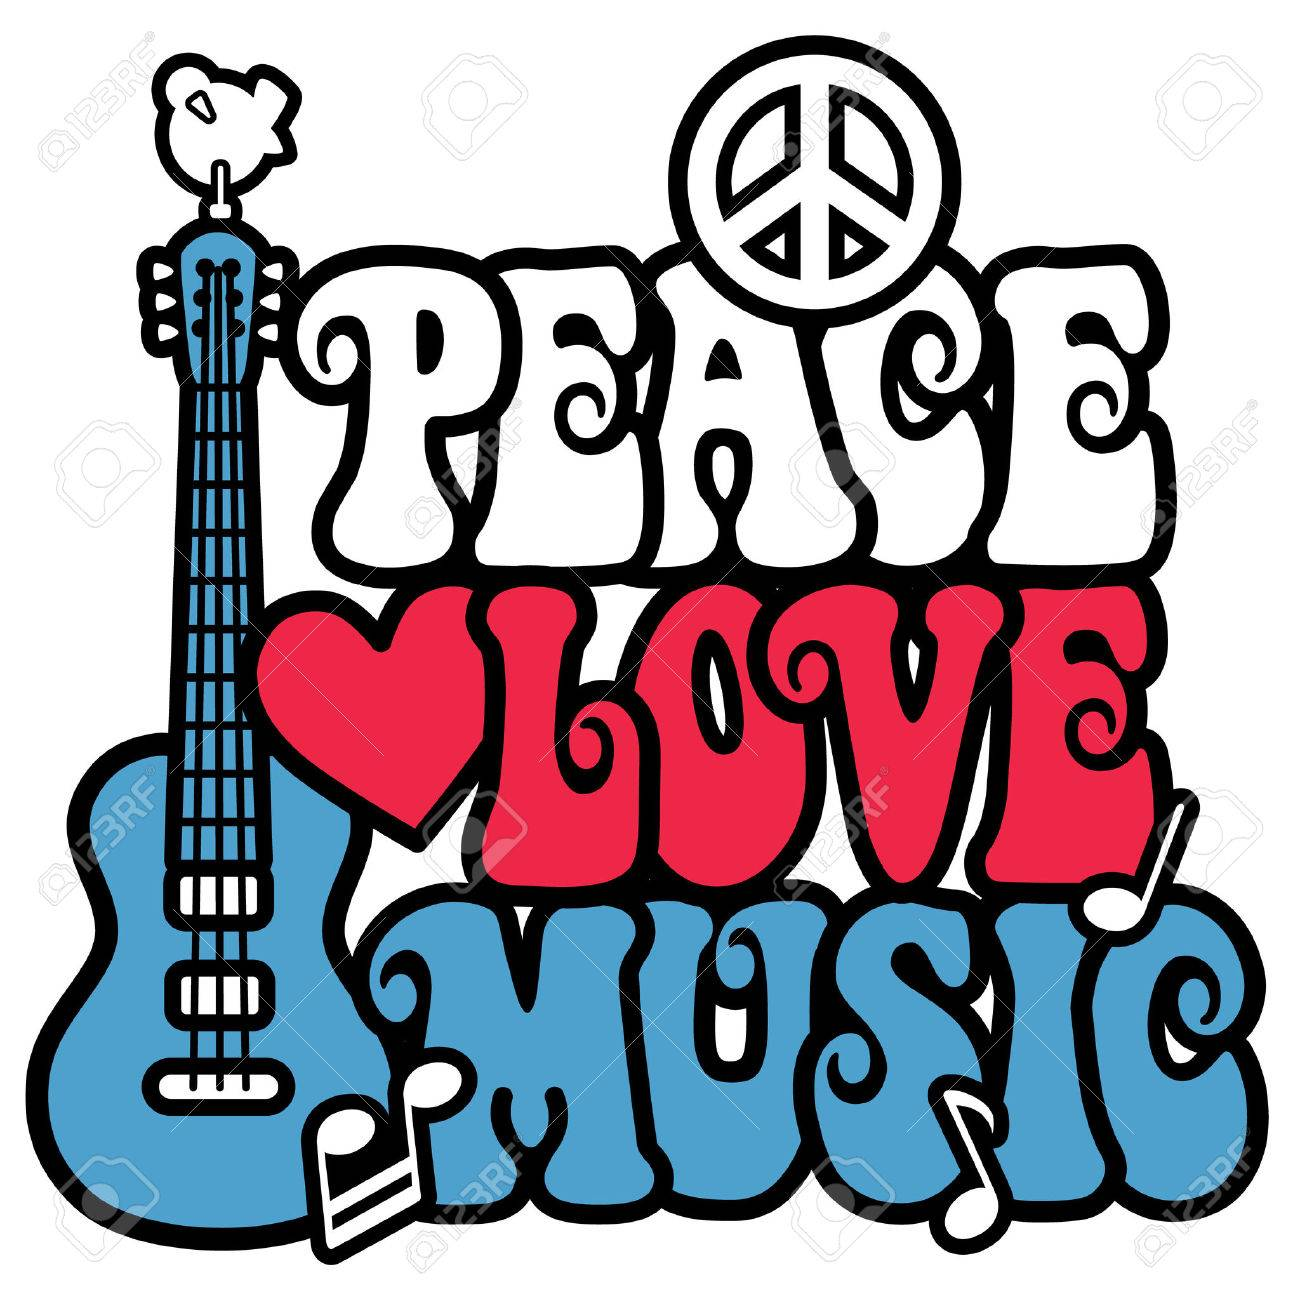 Peace love music design with guitar dove peace symbol heart peace love music design with guitar dove peace symbol heart and musical notes biocorpaavc